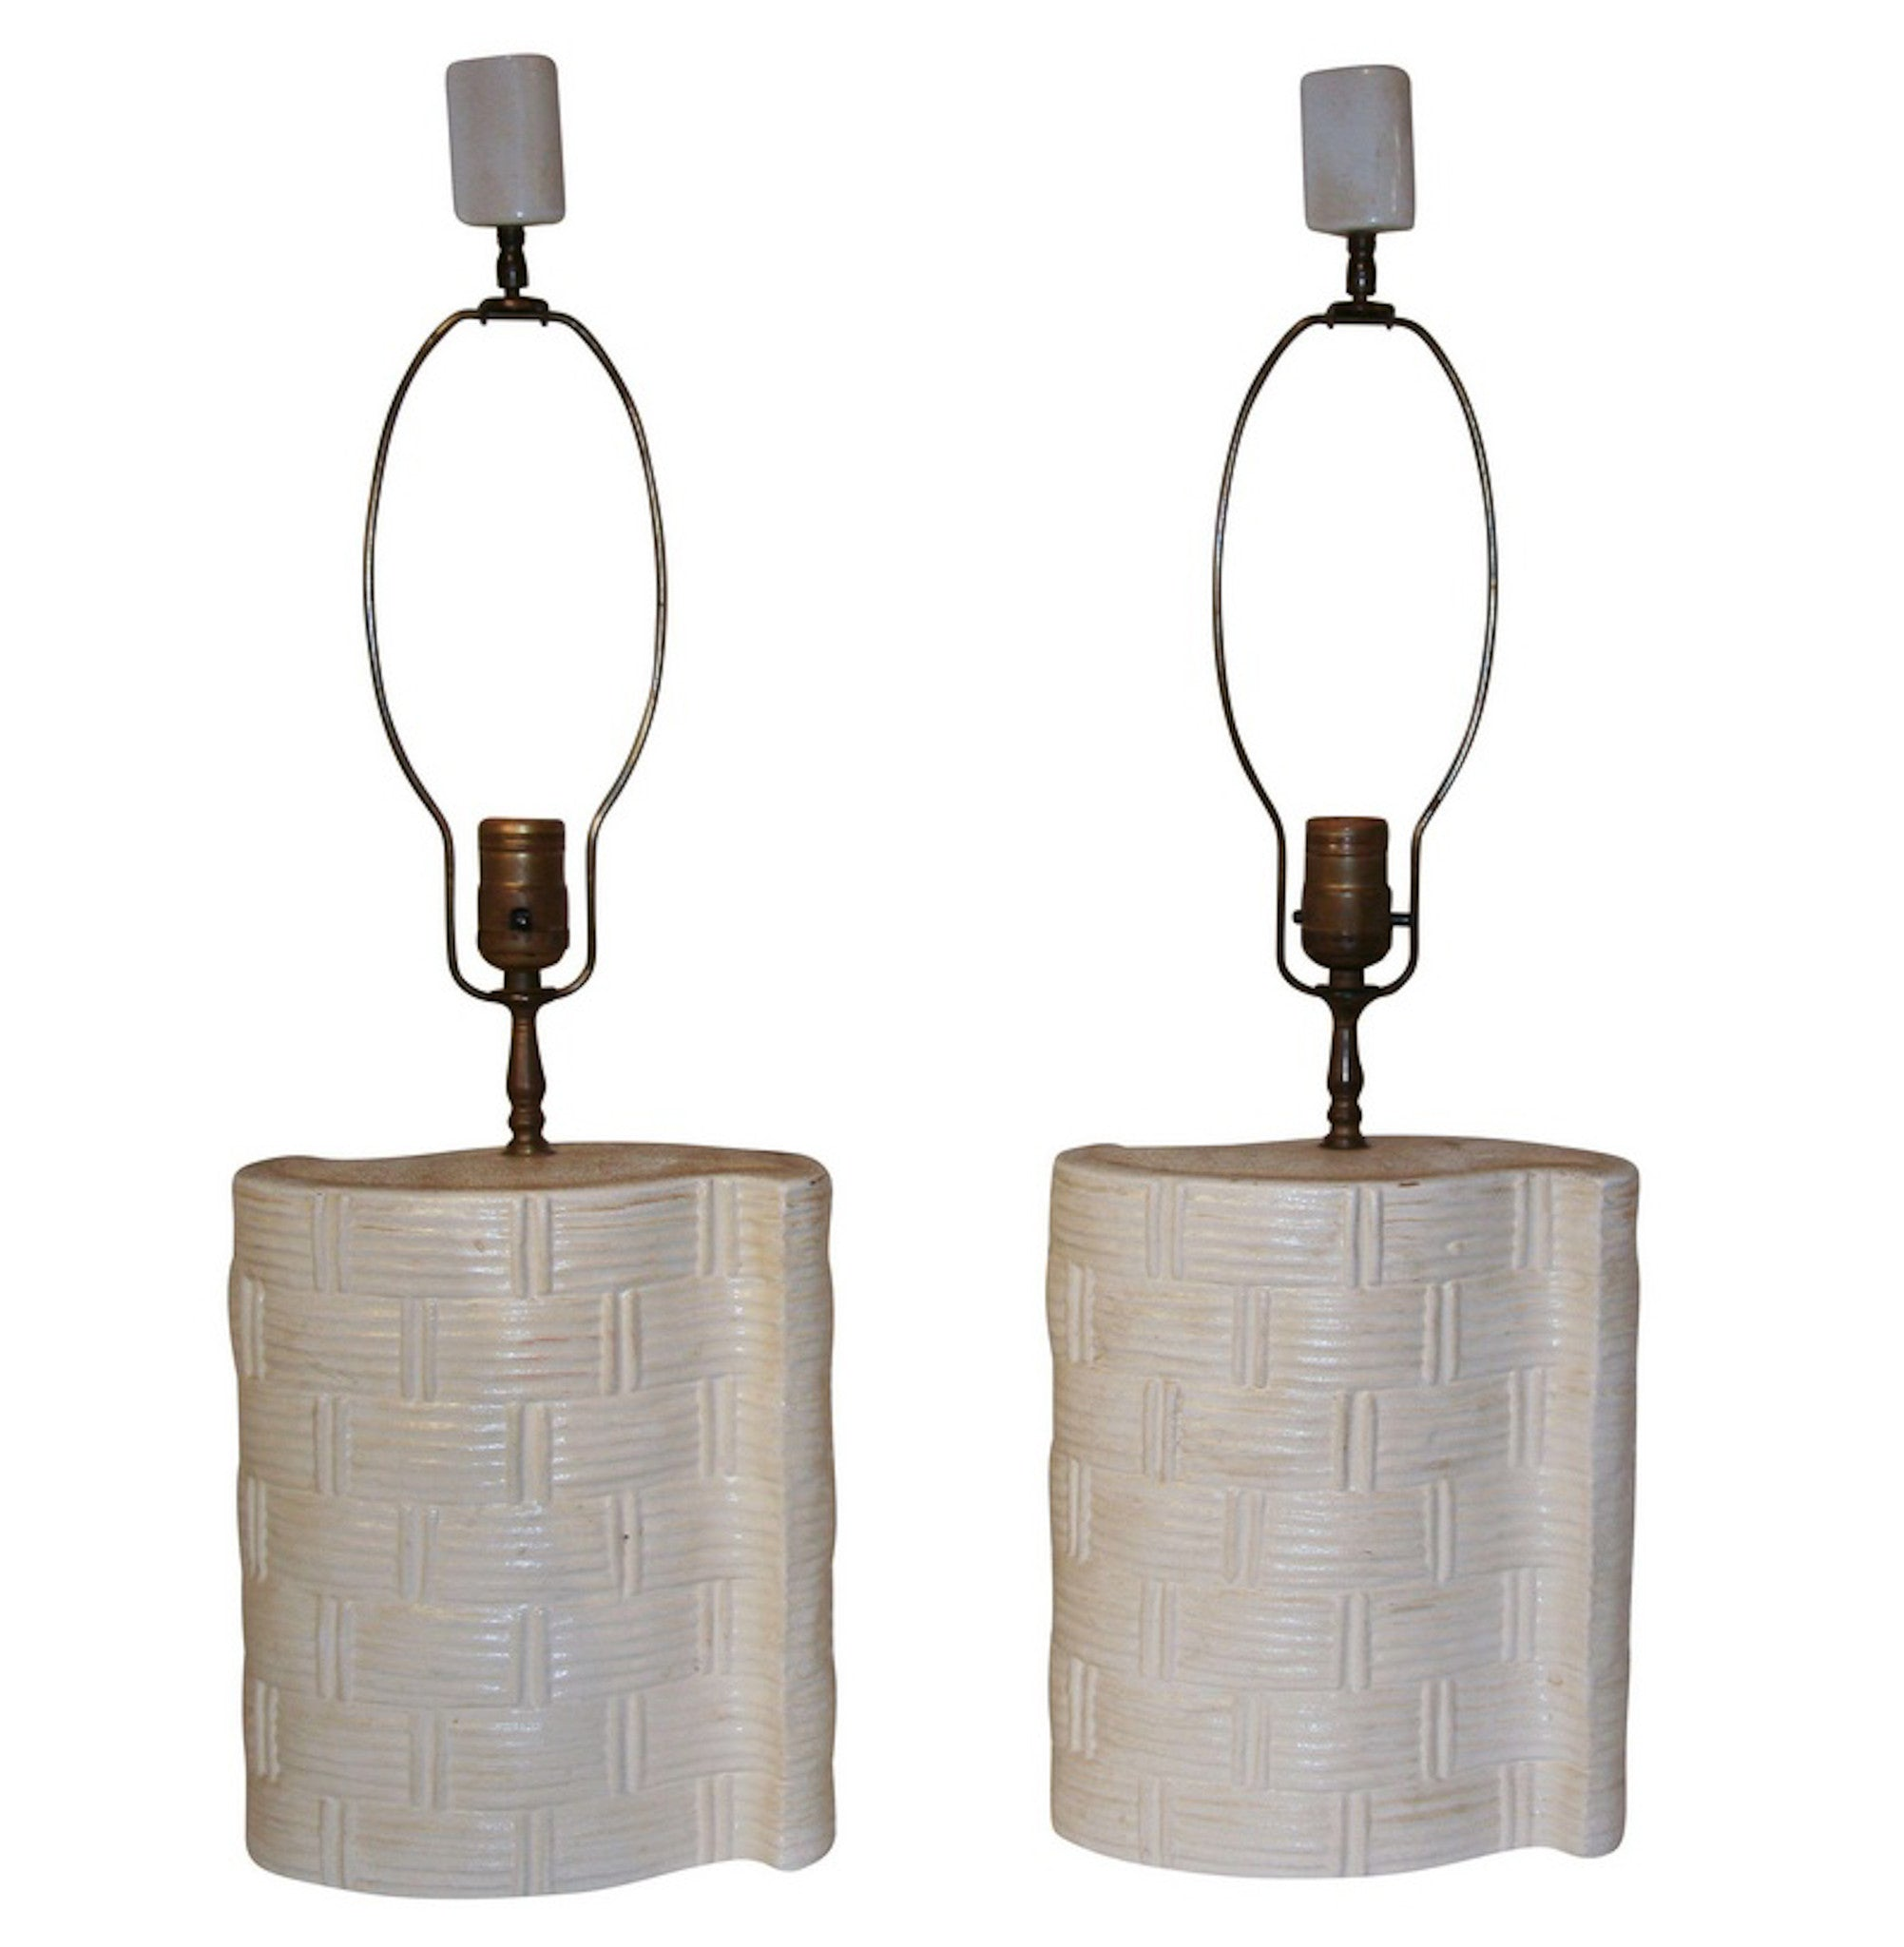 Mid Century Basket Weave Pottery Lamps - Studio lane at Reposed NY Vintage Home Decor